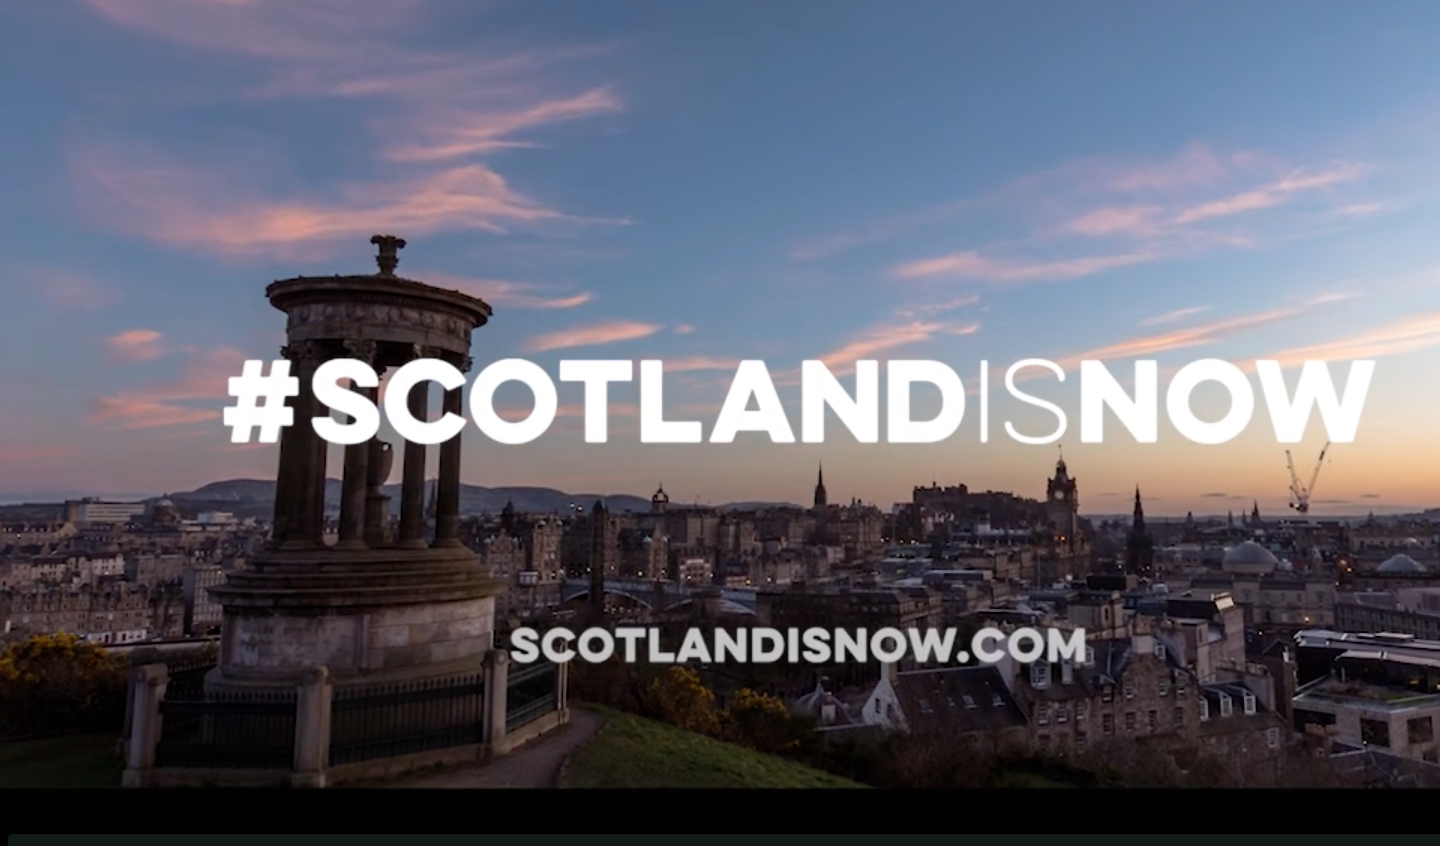 £6m campaign aims to put Scotland on top – Daily Business